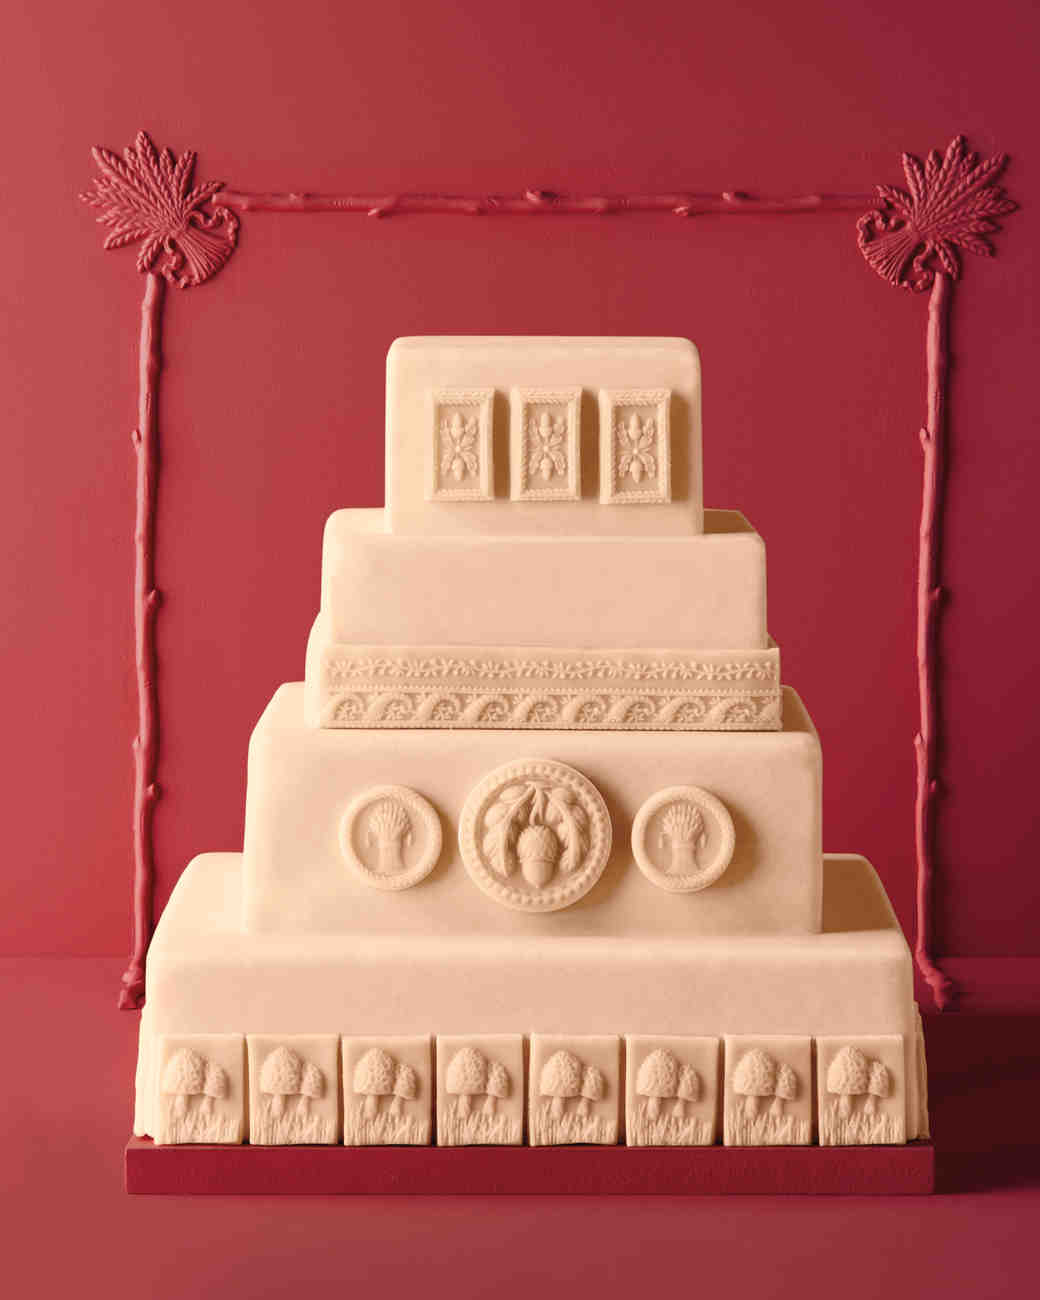 fall-wedding-cake-b-0340-d112493-comp.jpg